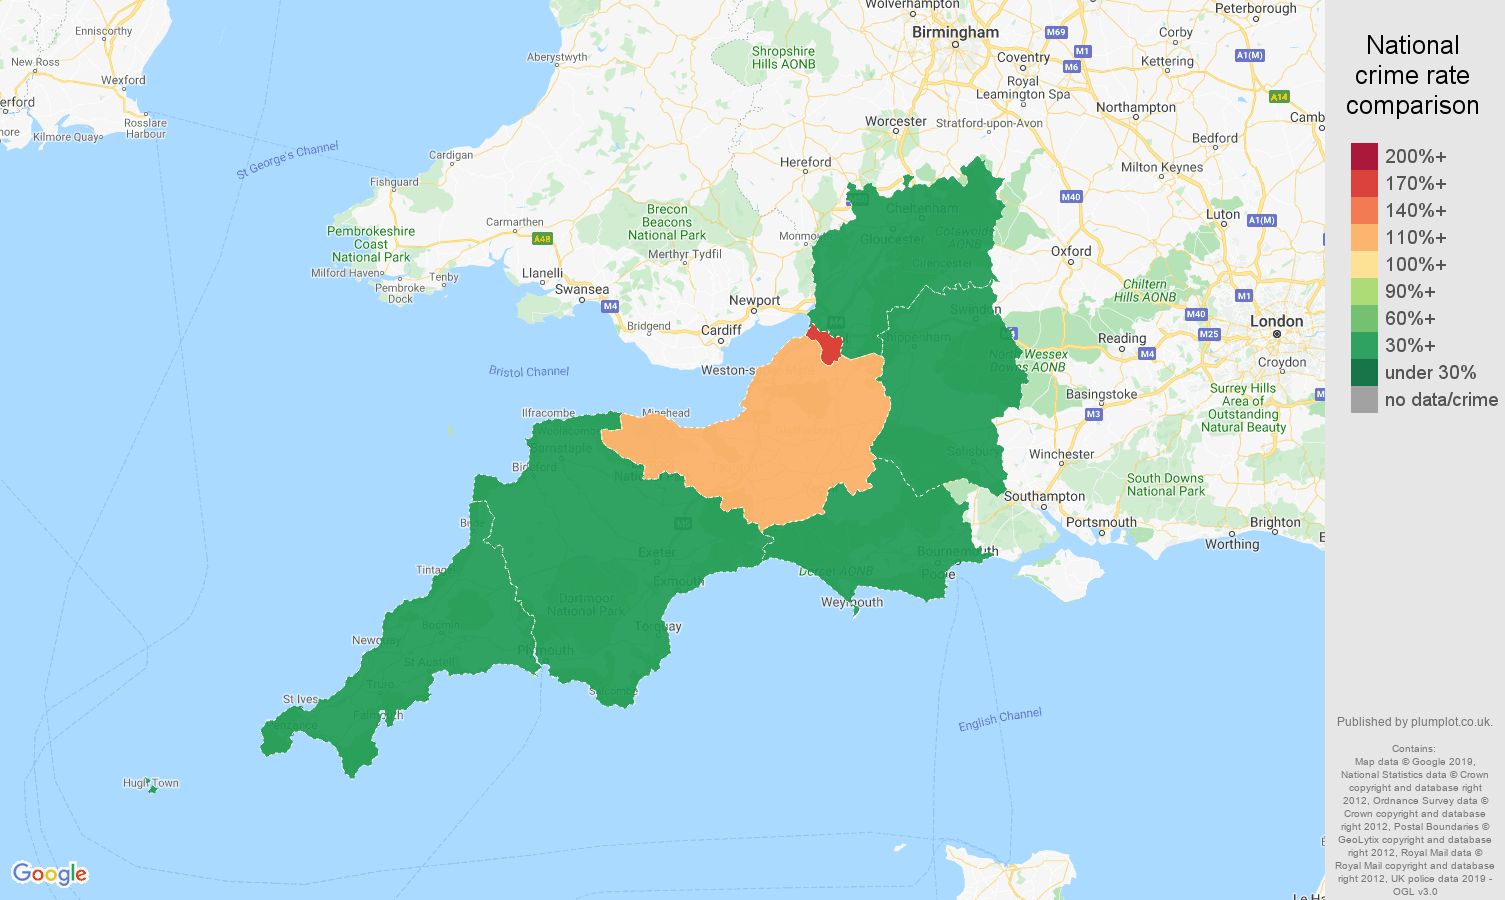 South West public order crime rate comparison map